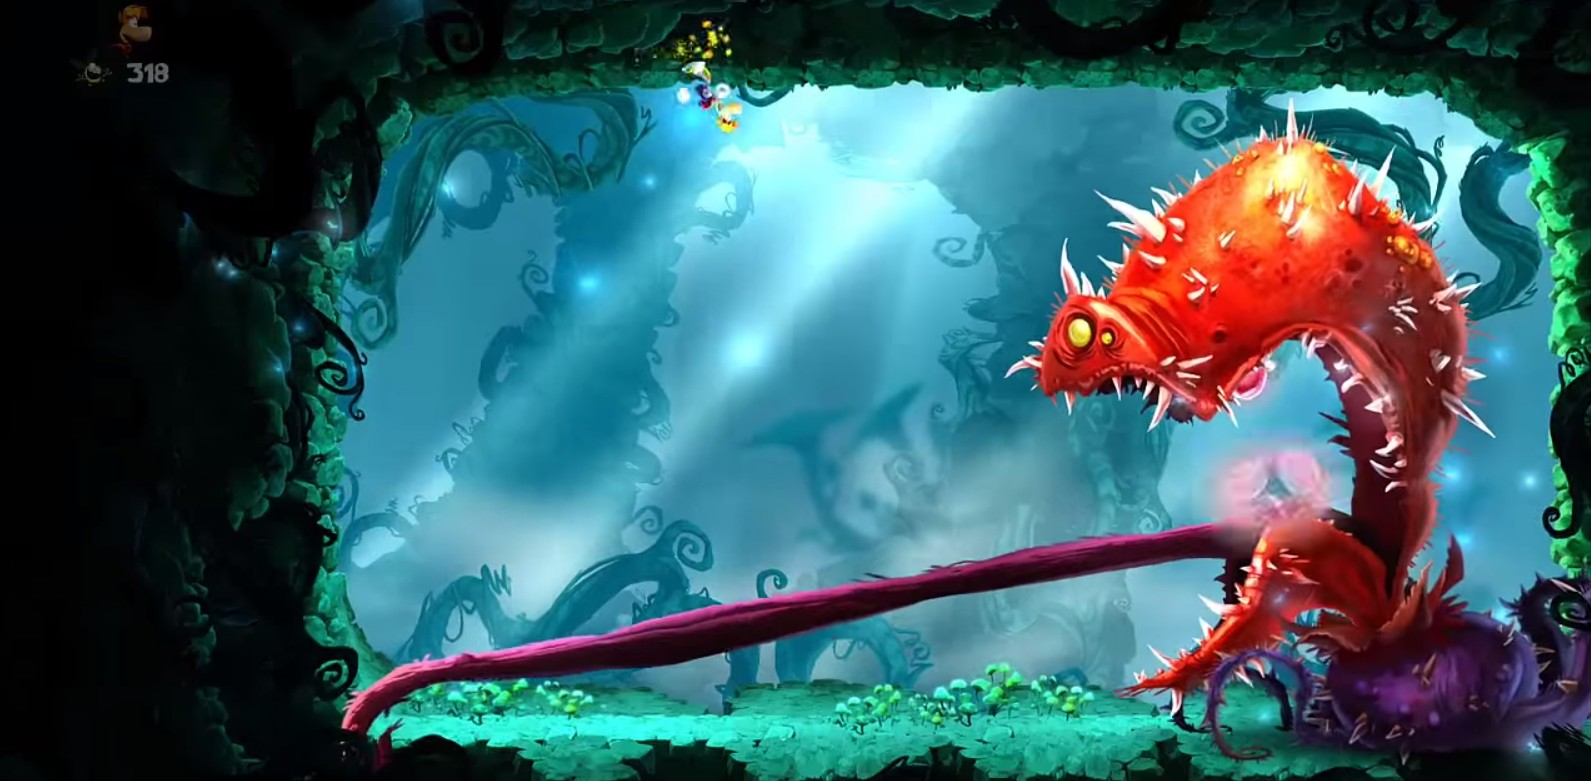 Rayman Legends  Rating and User Reviews  GAMERS DECIDE